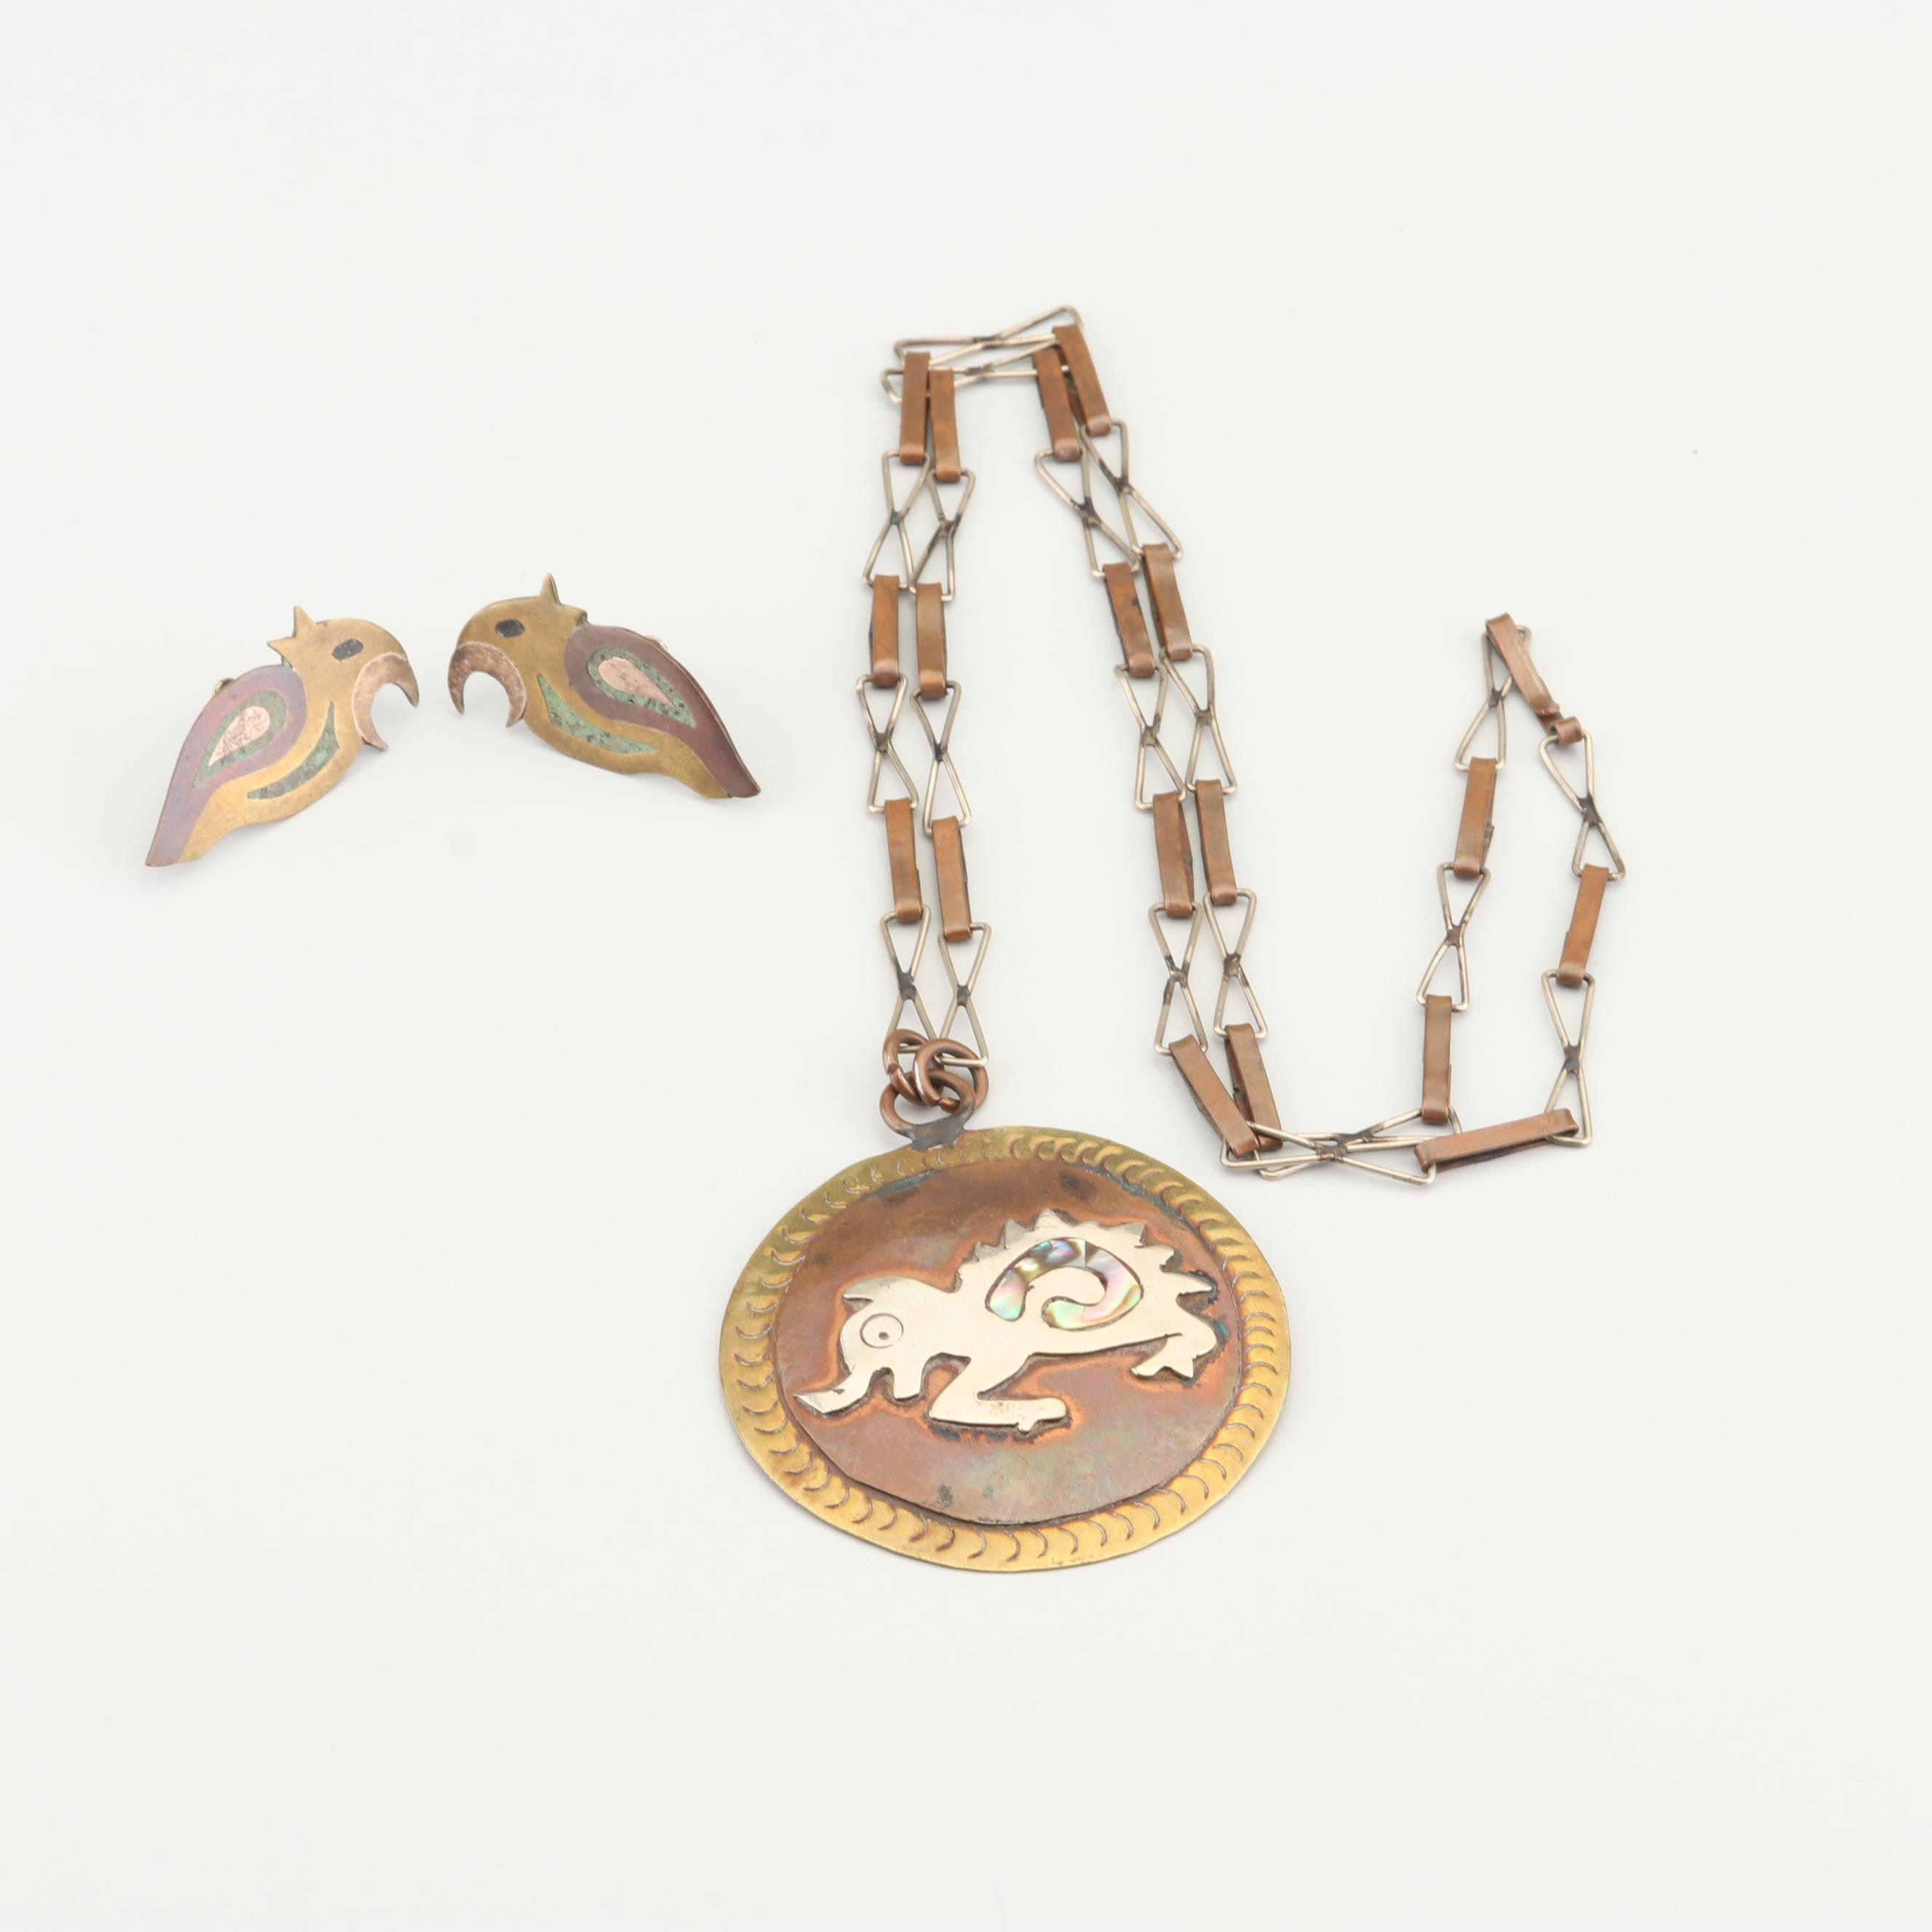 Brass, Copper, and Sterling Silver Jewelry Set